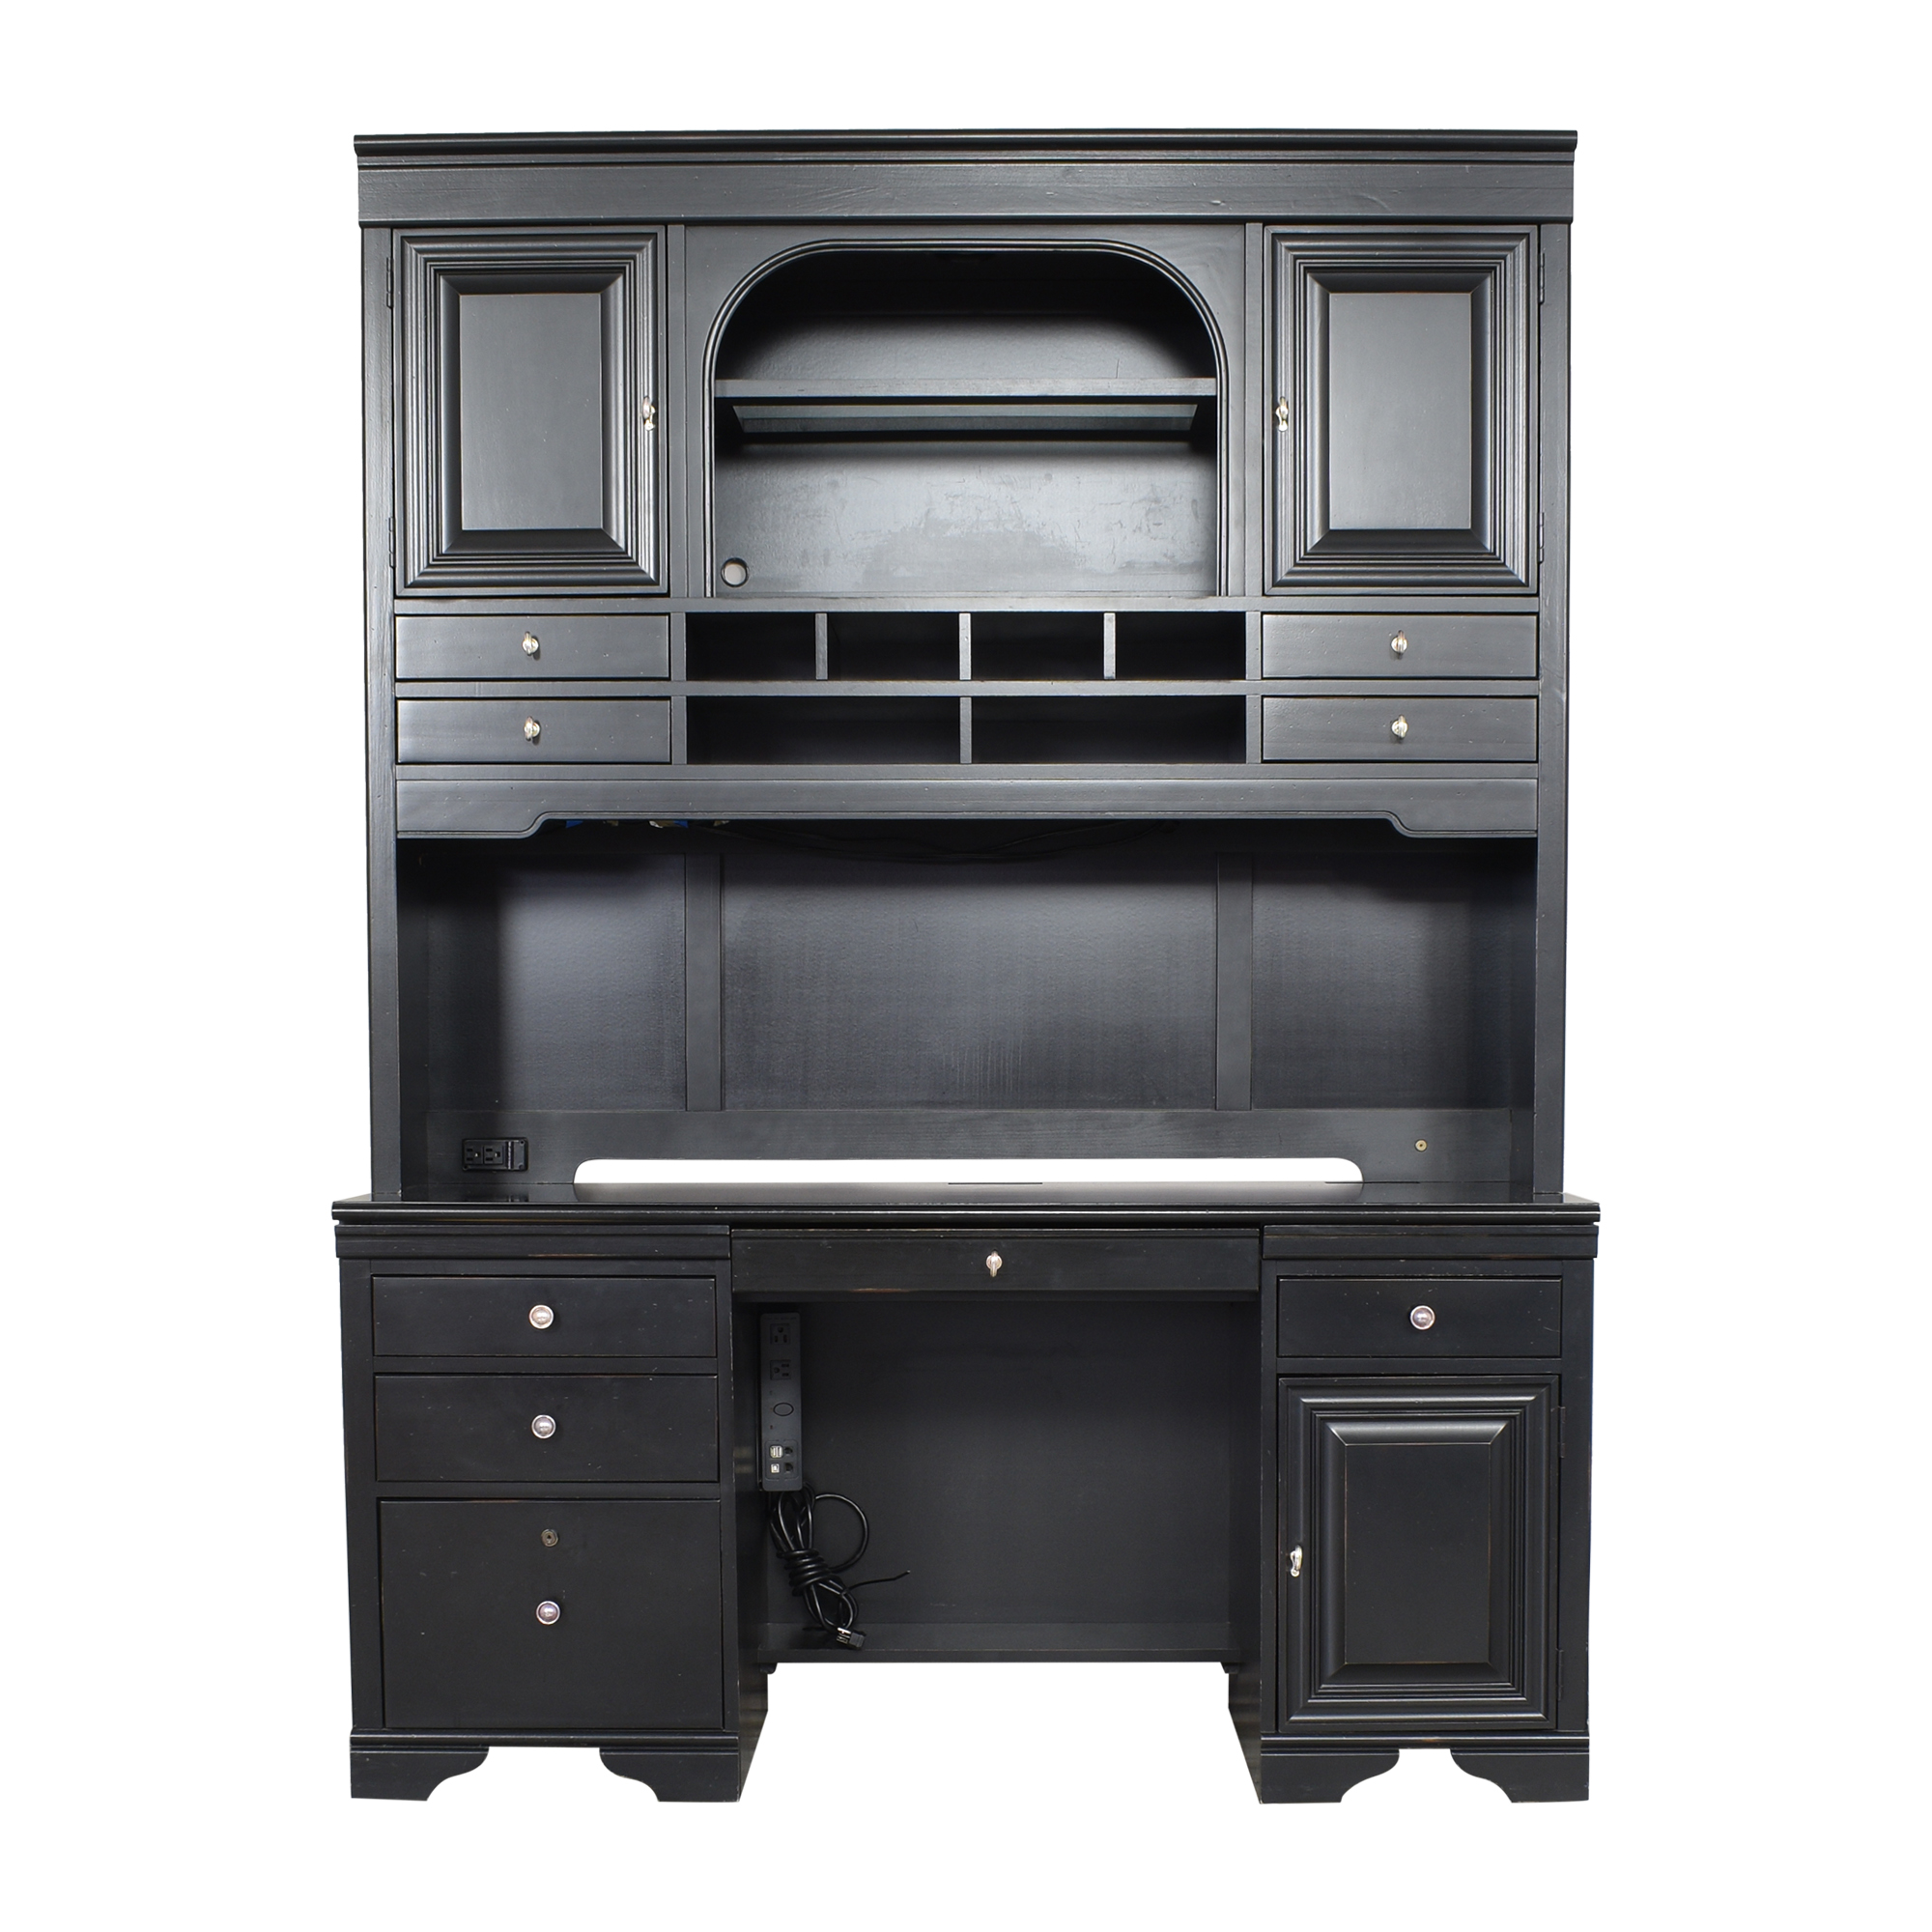 Stanley Furniture Louis Louis Desk and Hutch / Tables